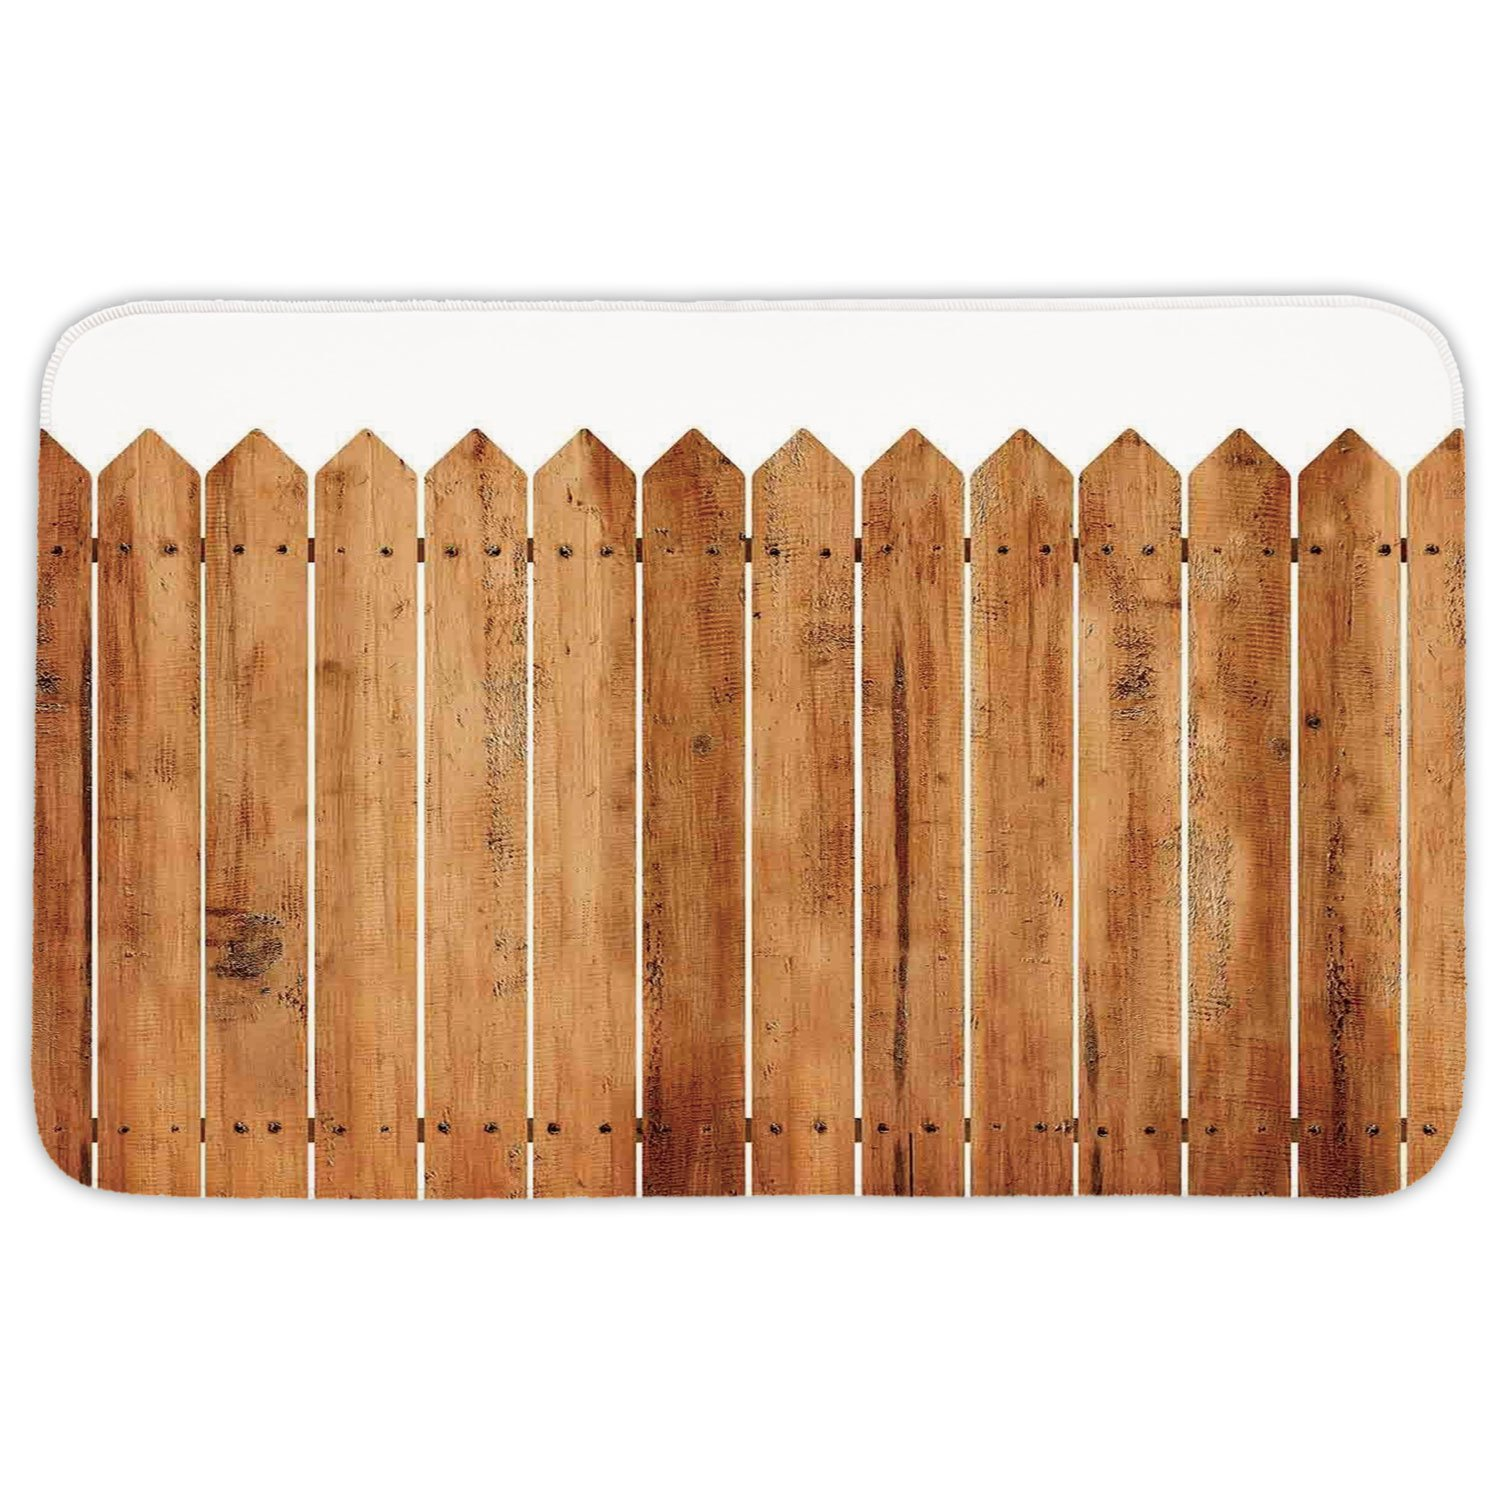 Rectangular Area Rug Mat Rug,Farm House Decor,Triangle Edged Timber Border Stripes Siding Woodwork Enclosing Tool Image,White Brown,Home Decor Mat with Non Slip Backing